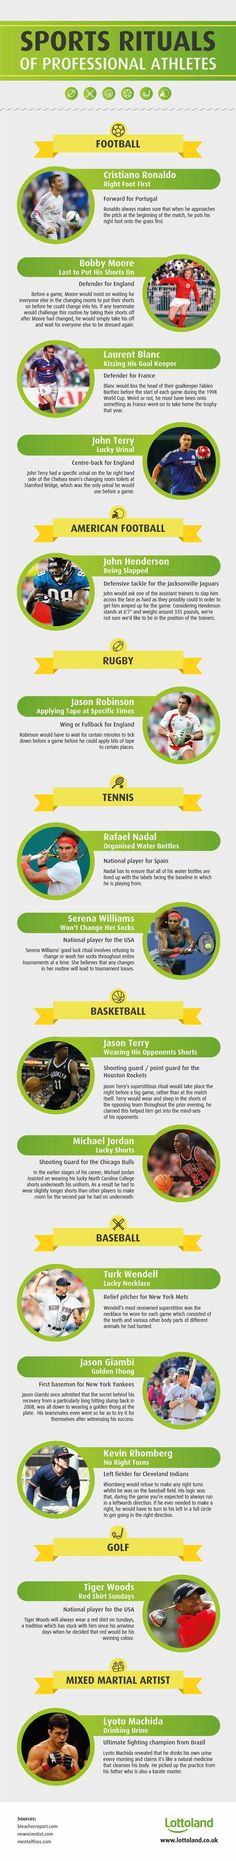 The Most Bizarre Sports Rituals of Professional Athletes #Infographic #Sports